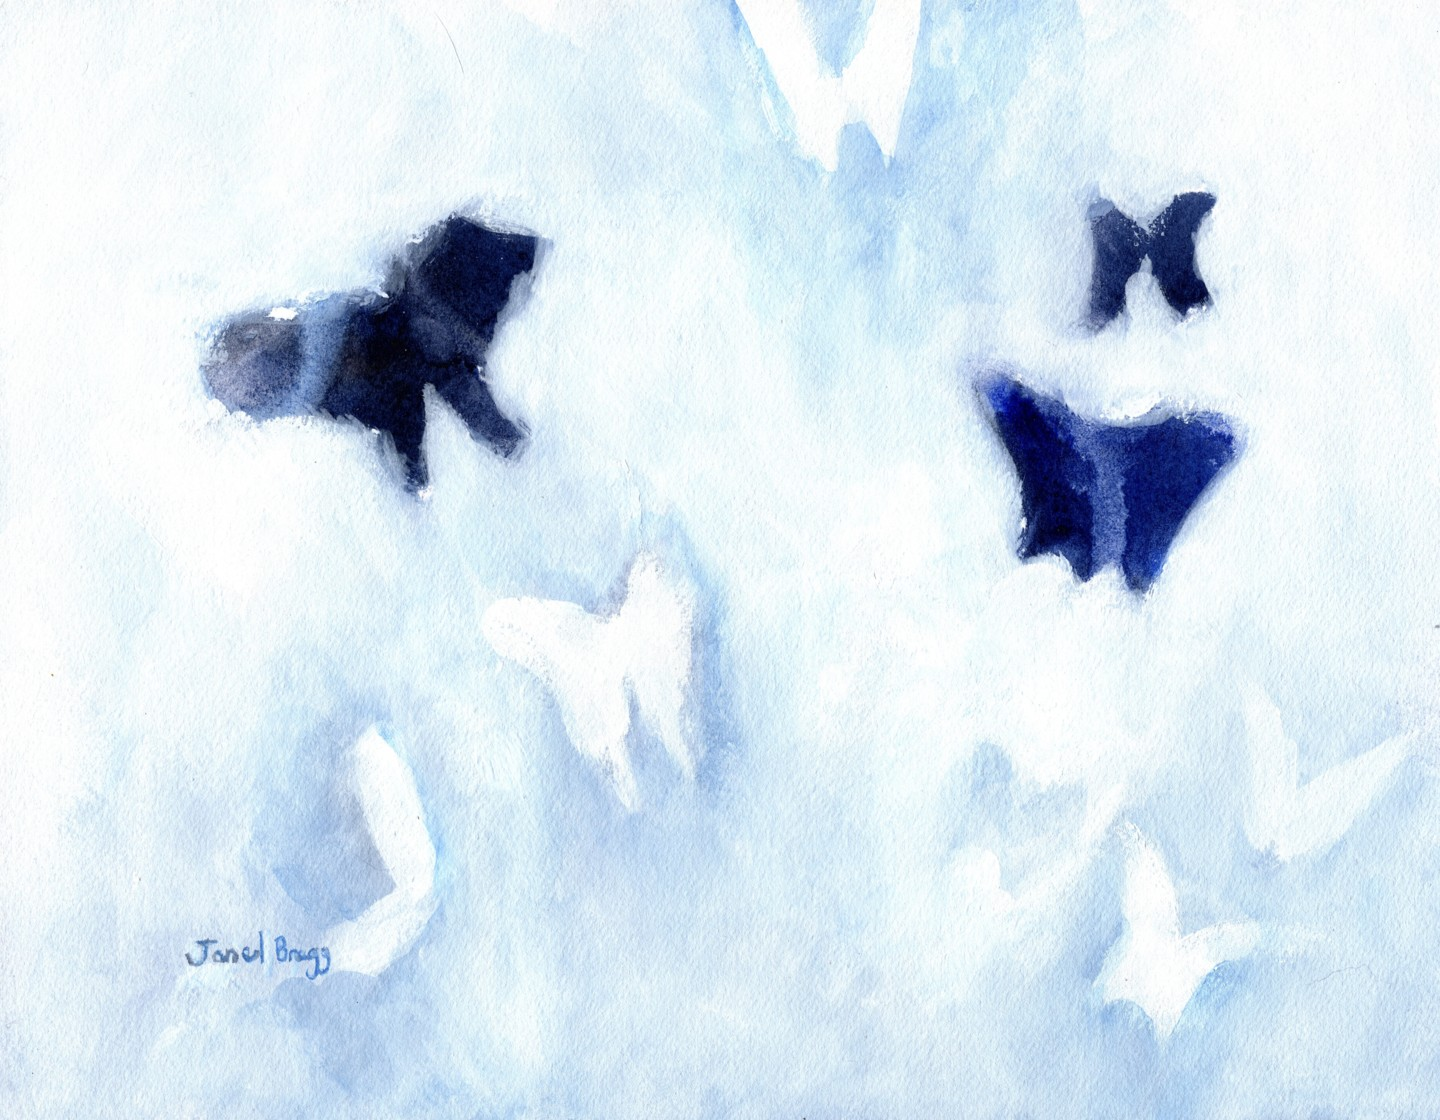 Janel Bragg - Blue and White Butterfly Composition